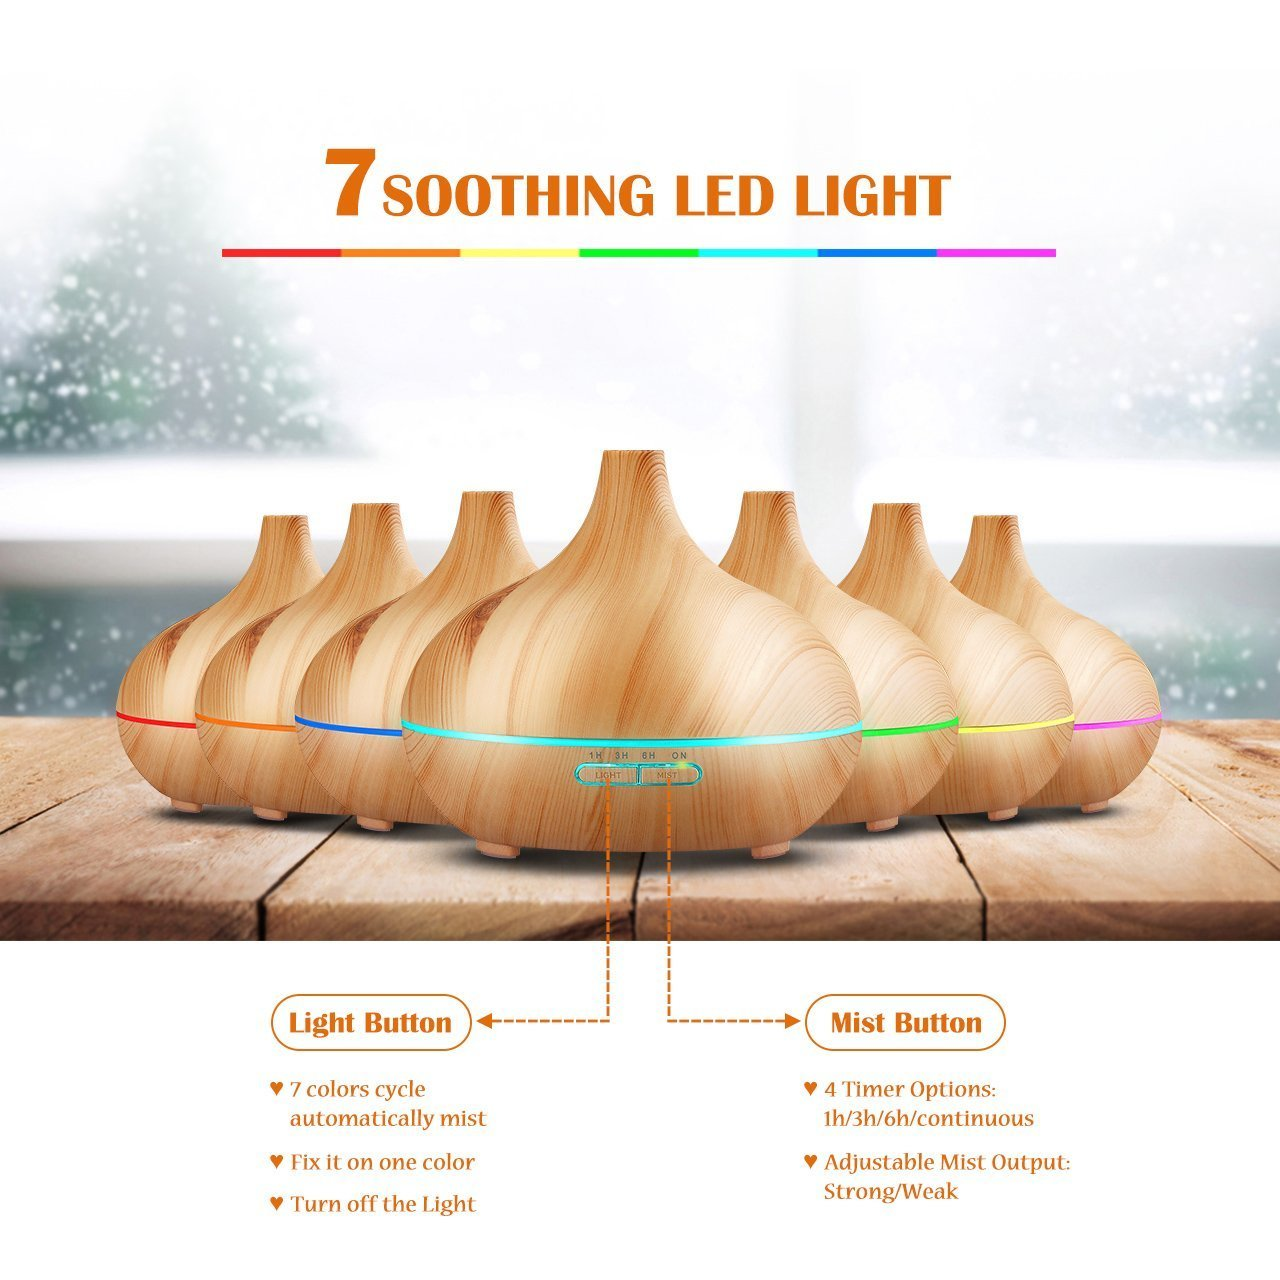 300ml cold fog humidifier ultrasonic aromatherapy essential oil disperser, wood grain 6 timing7 color LED automatic induction, no water closed function, office, home, living room, study, yoga, spa by Top-Fans (Image #3)